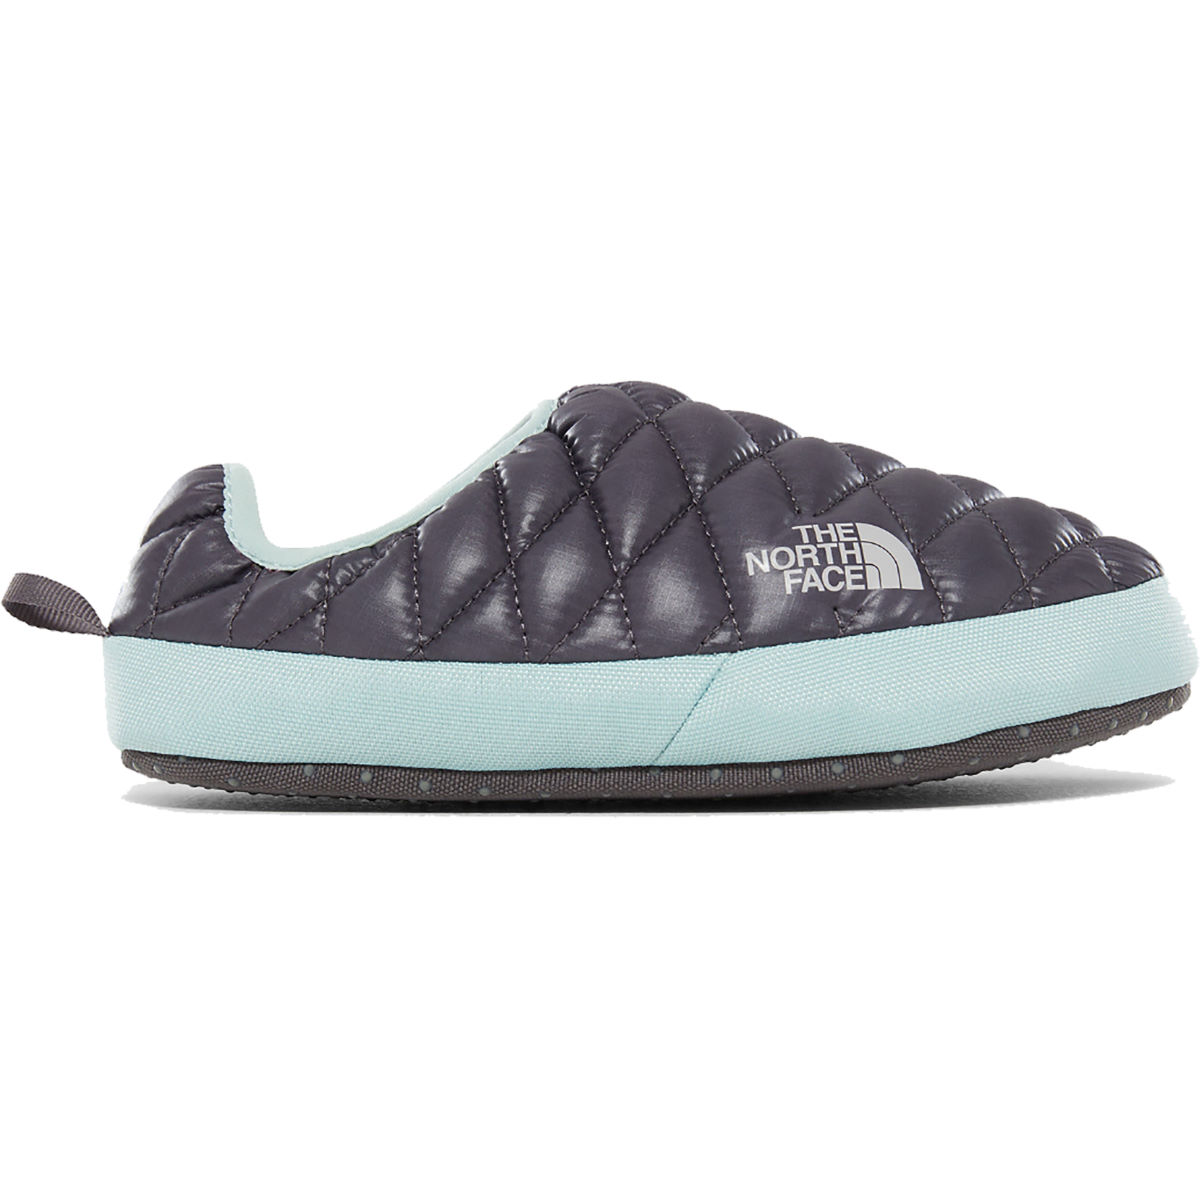 The North Face Women's ThermoBall Tent Mule IV - Pantuflas